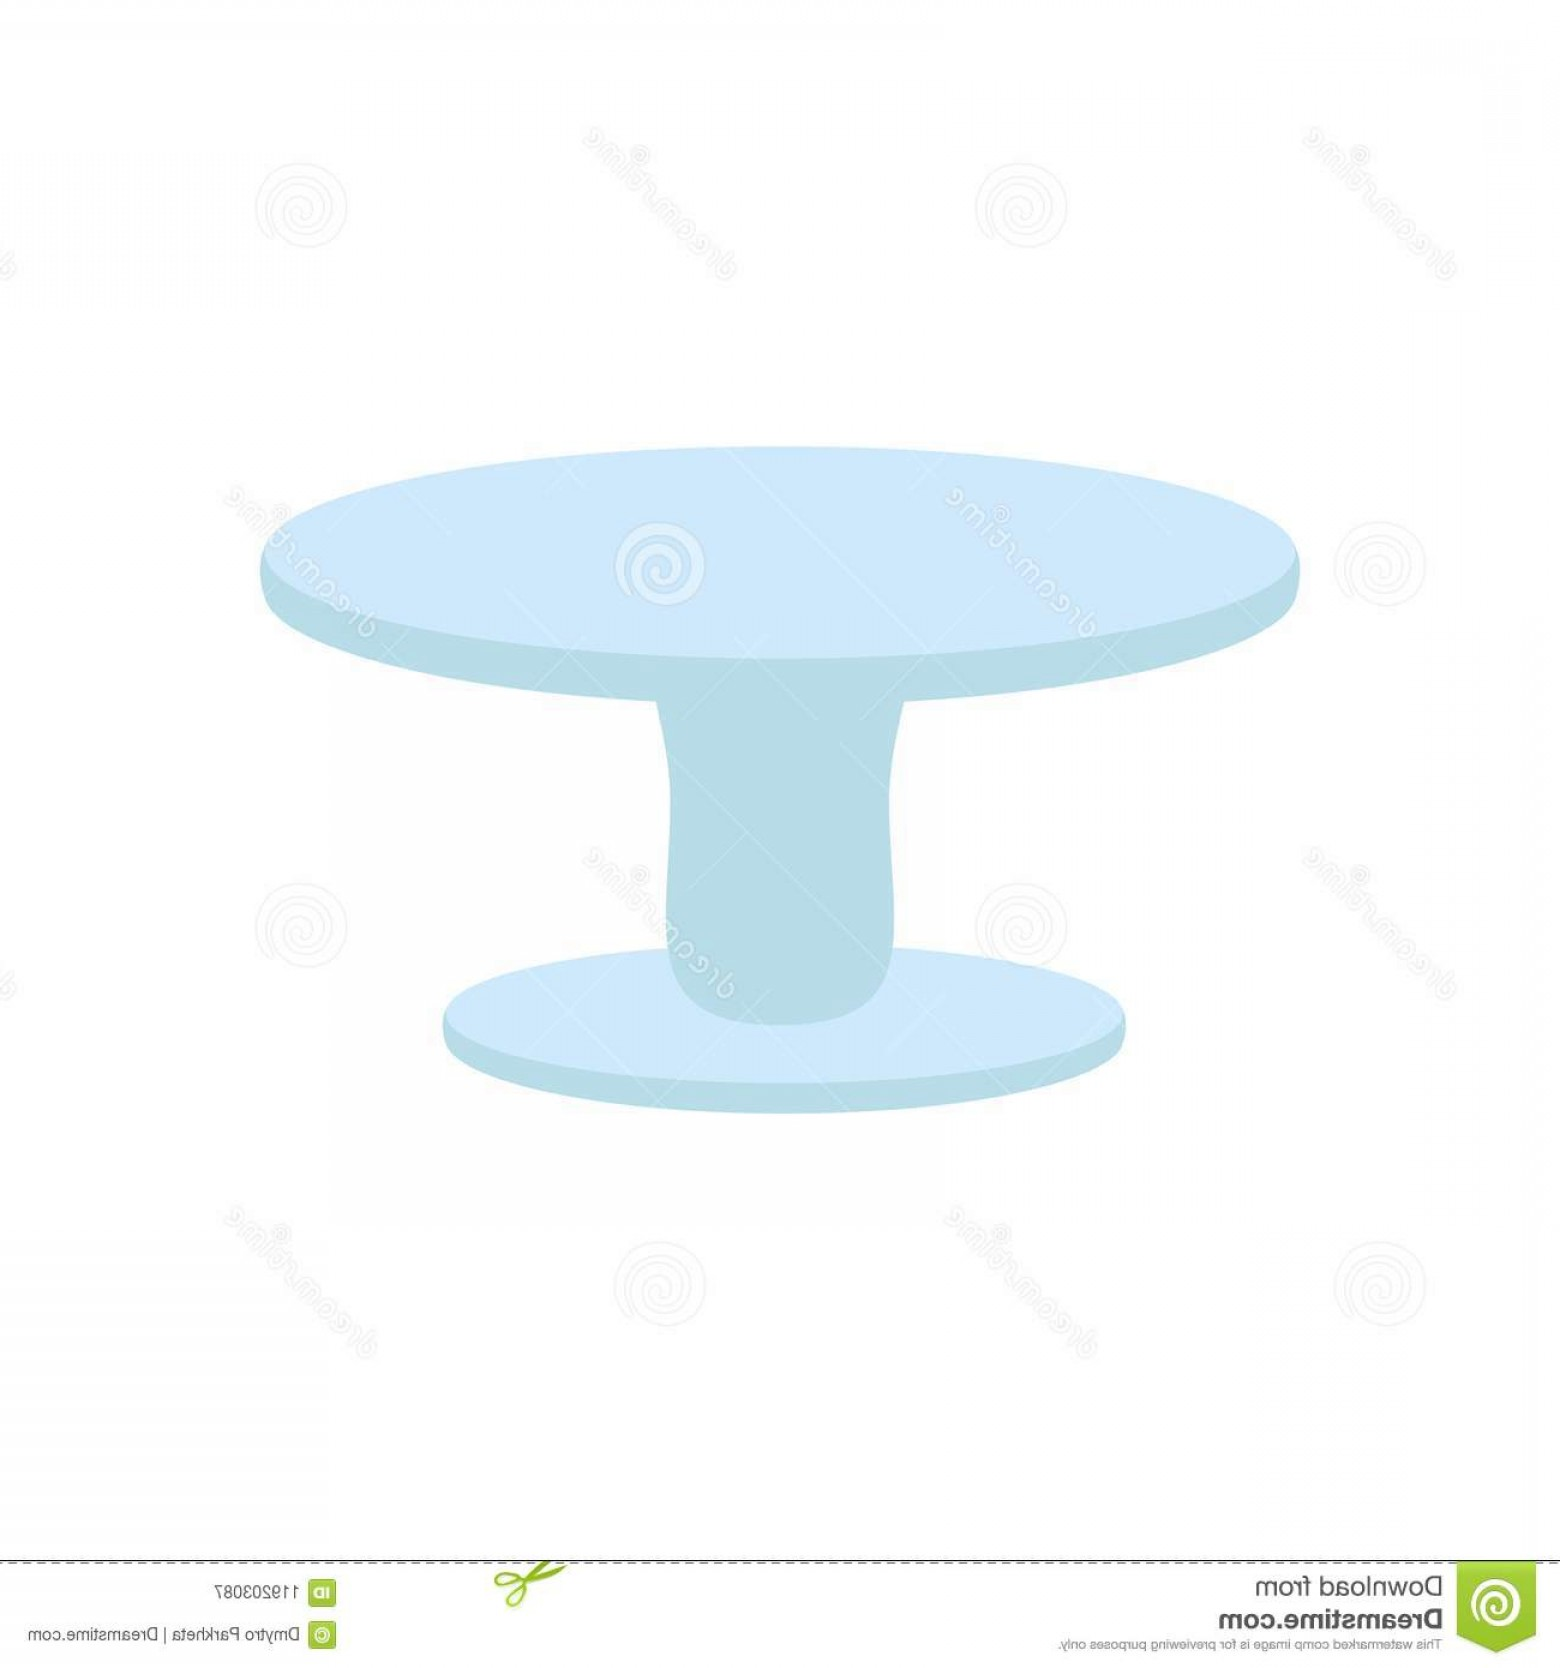 Cake Stand Vector: Cake Stand Illustration White Background Vector Image